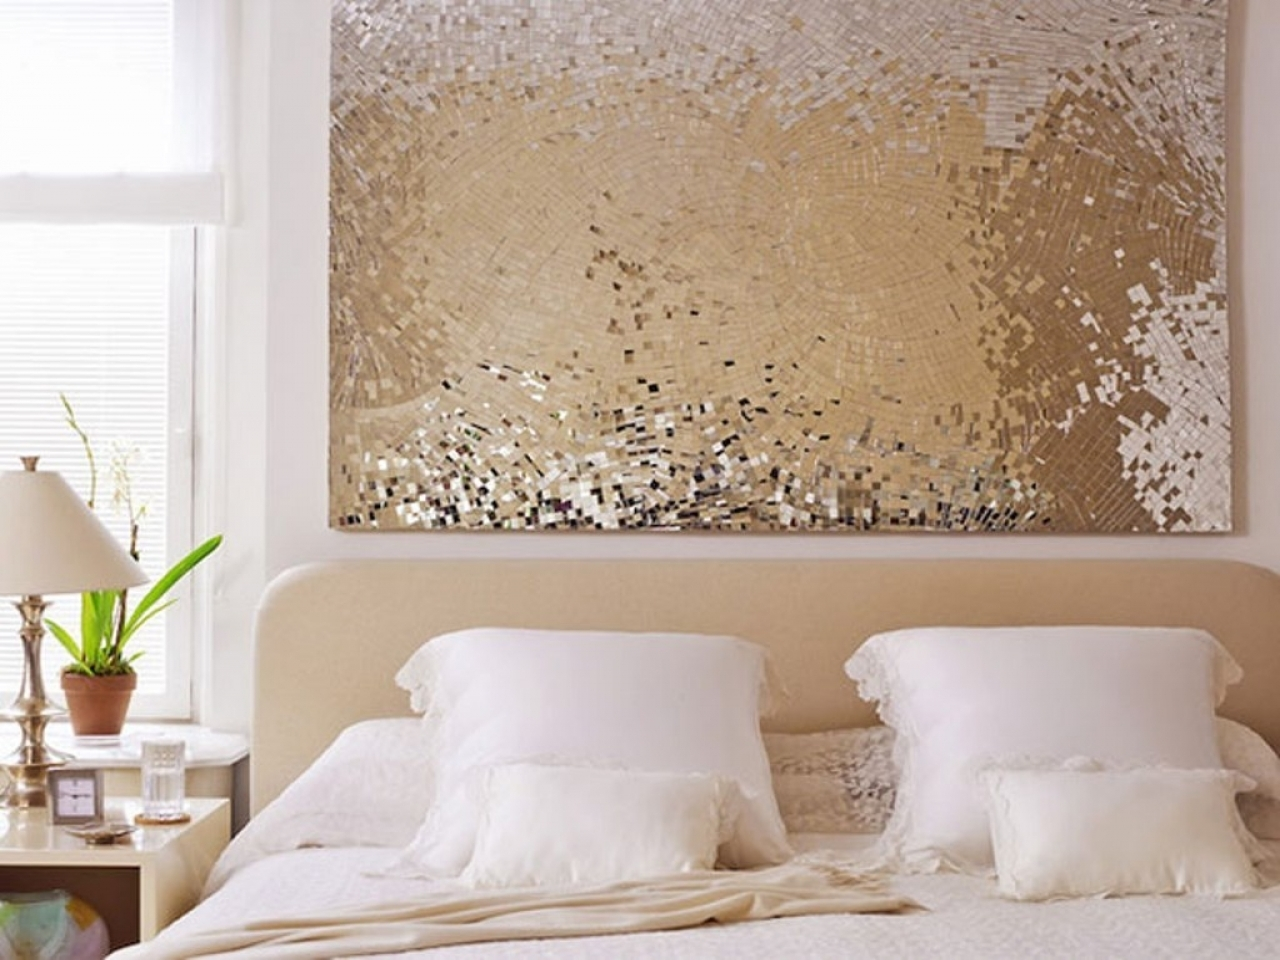 Wall Art Ideas For Bedroom, Diy Christmas Wall Decorations Diy Intended For Best And Newest Gold Wall Accents (View 13 of 15)